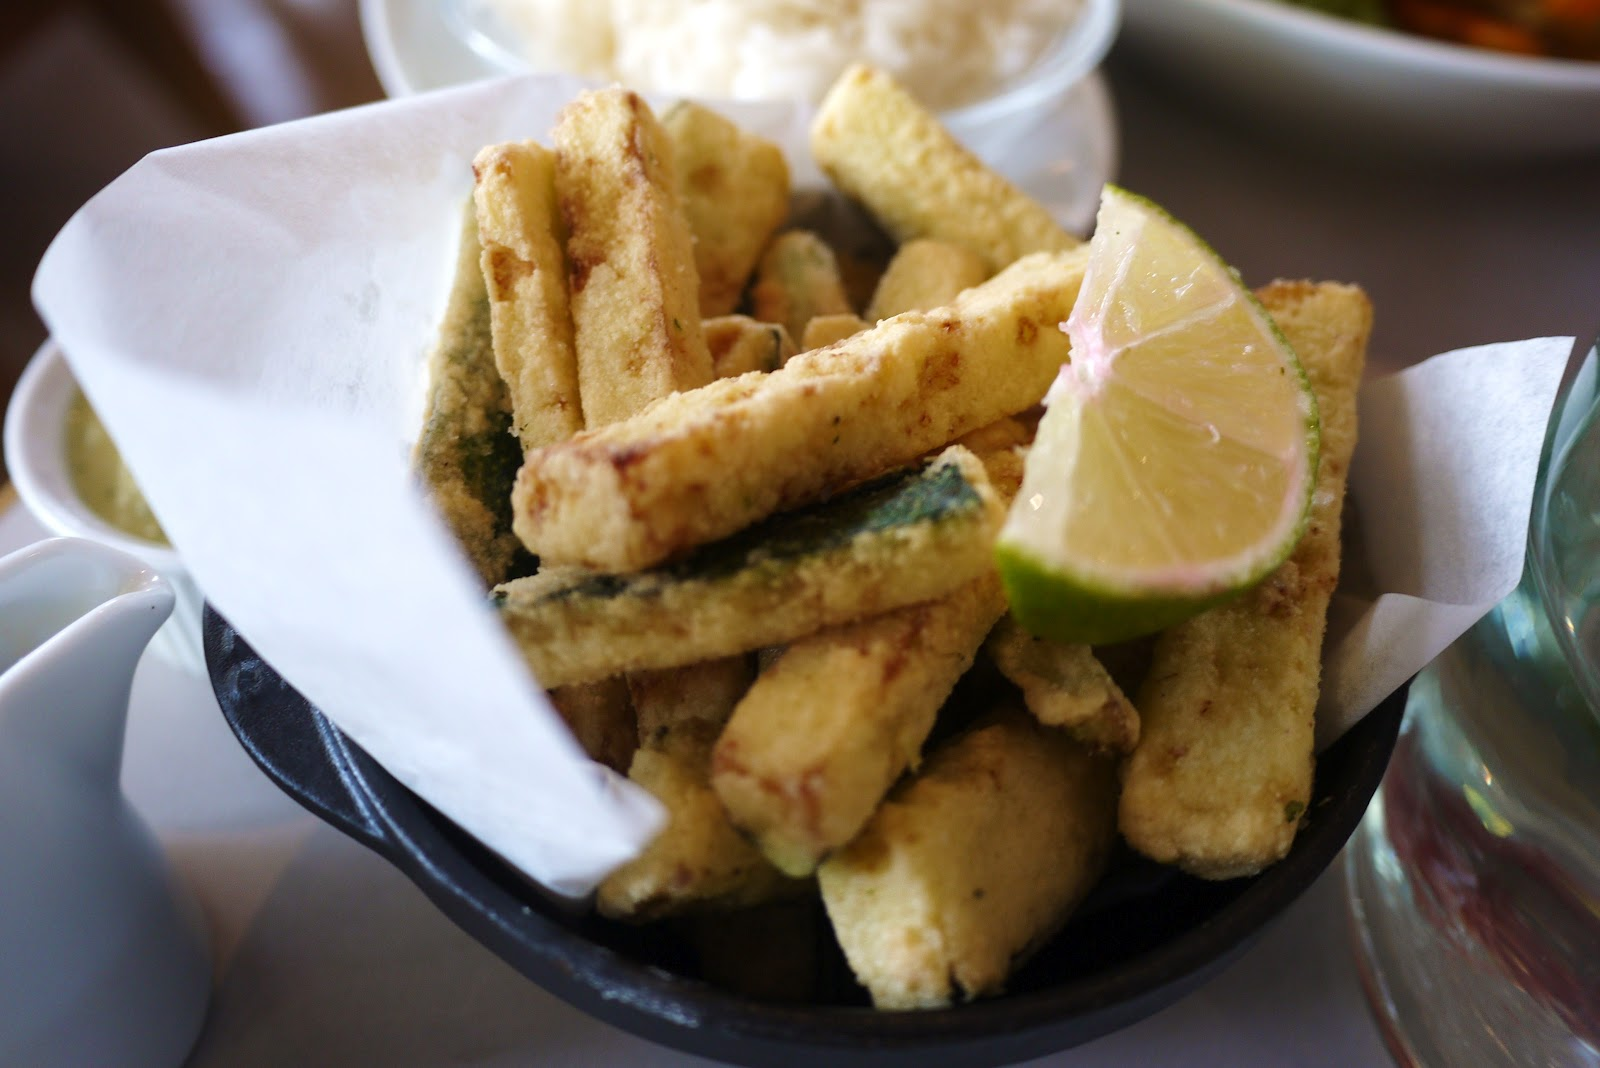 Granger & Co Courgette Fries